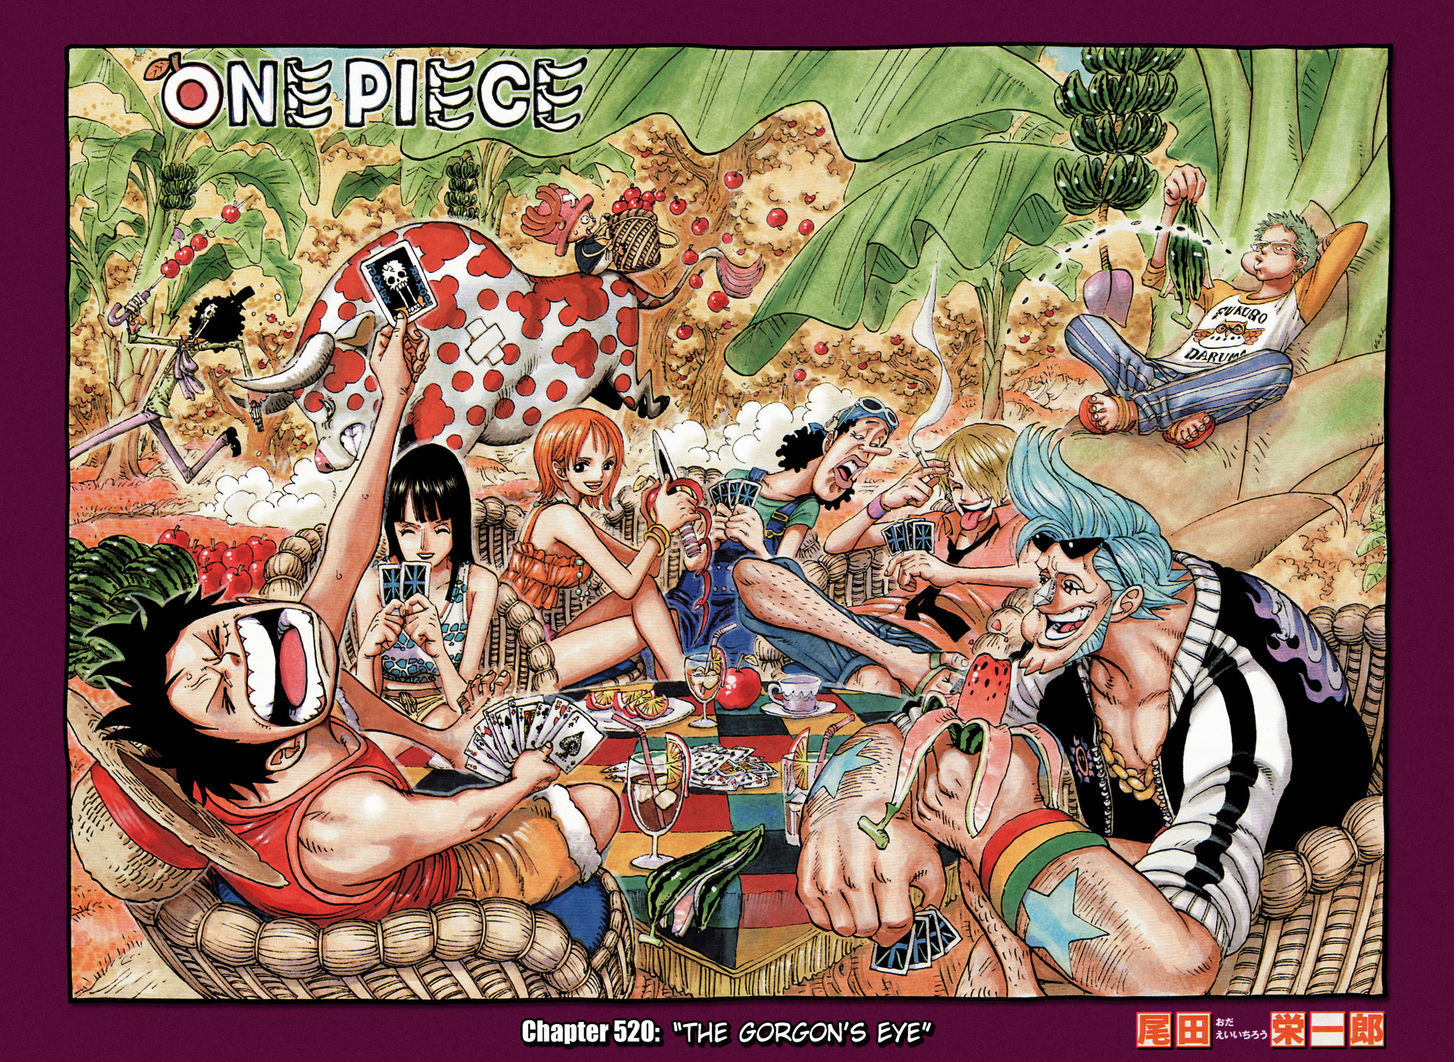 https://im.nineanime.com/comics/pic9/32/96/2868/OnePiece5200951.jpg Page 1